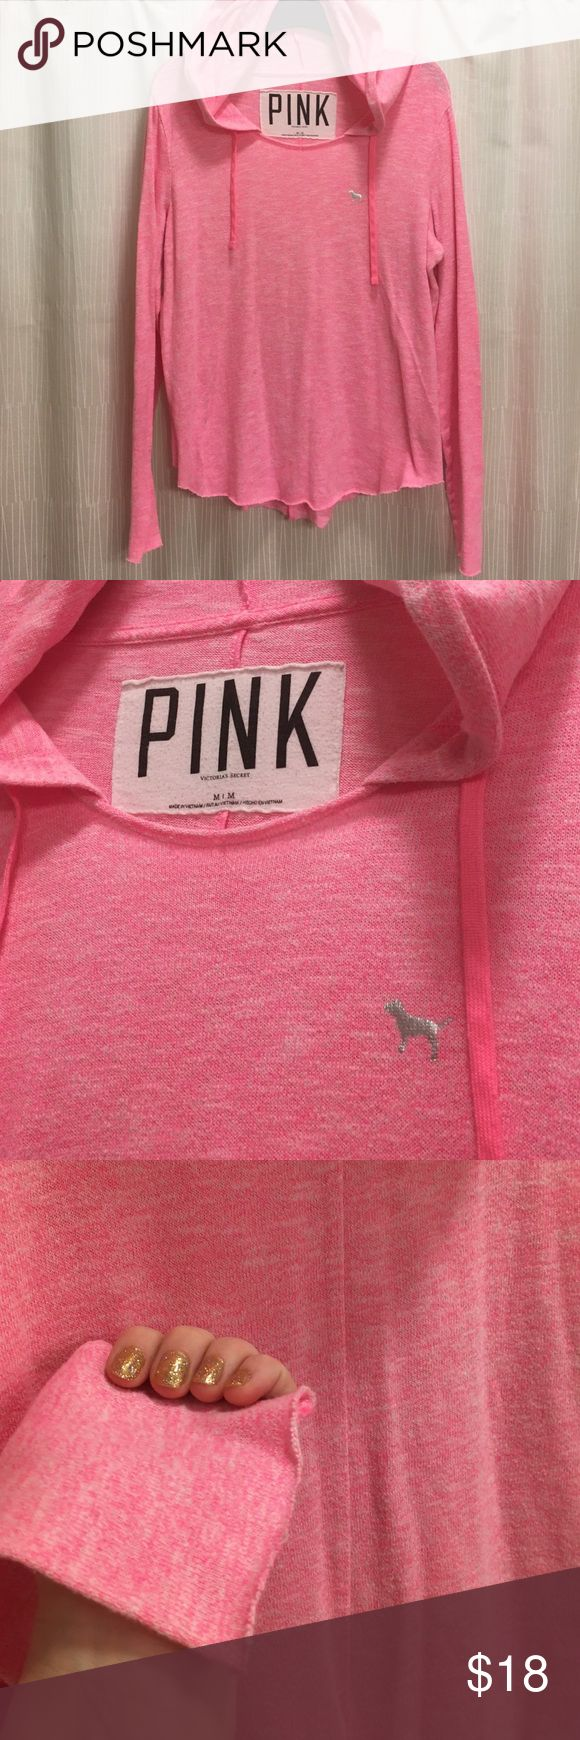 PINK. Hot😍Pink Slouchy Pullover Hoodie 💗 Hot Pink hoodie from Victoria's Secret PINK. Great shape, worn a handful of times. Bright marled pink, very lightweight. Features dog logo on chest, rough hemlines, and seam down the back. Hood has print shown in last photo. PINK Victoria's Secret Tops Sweatshirts & Hoodies